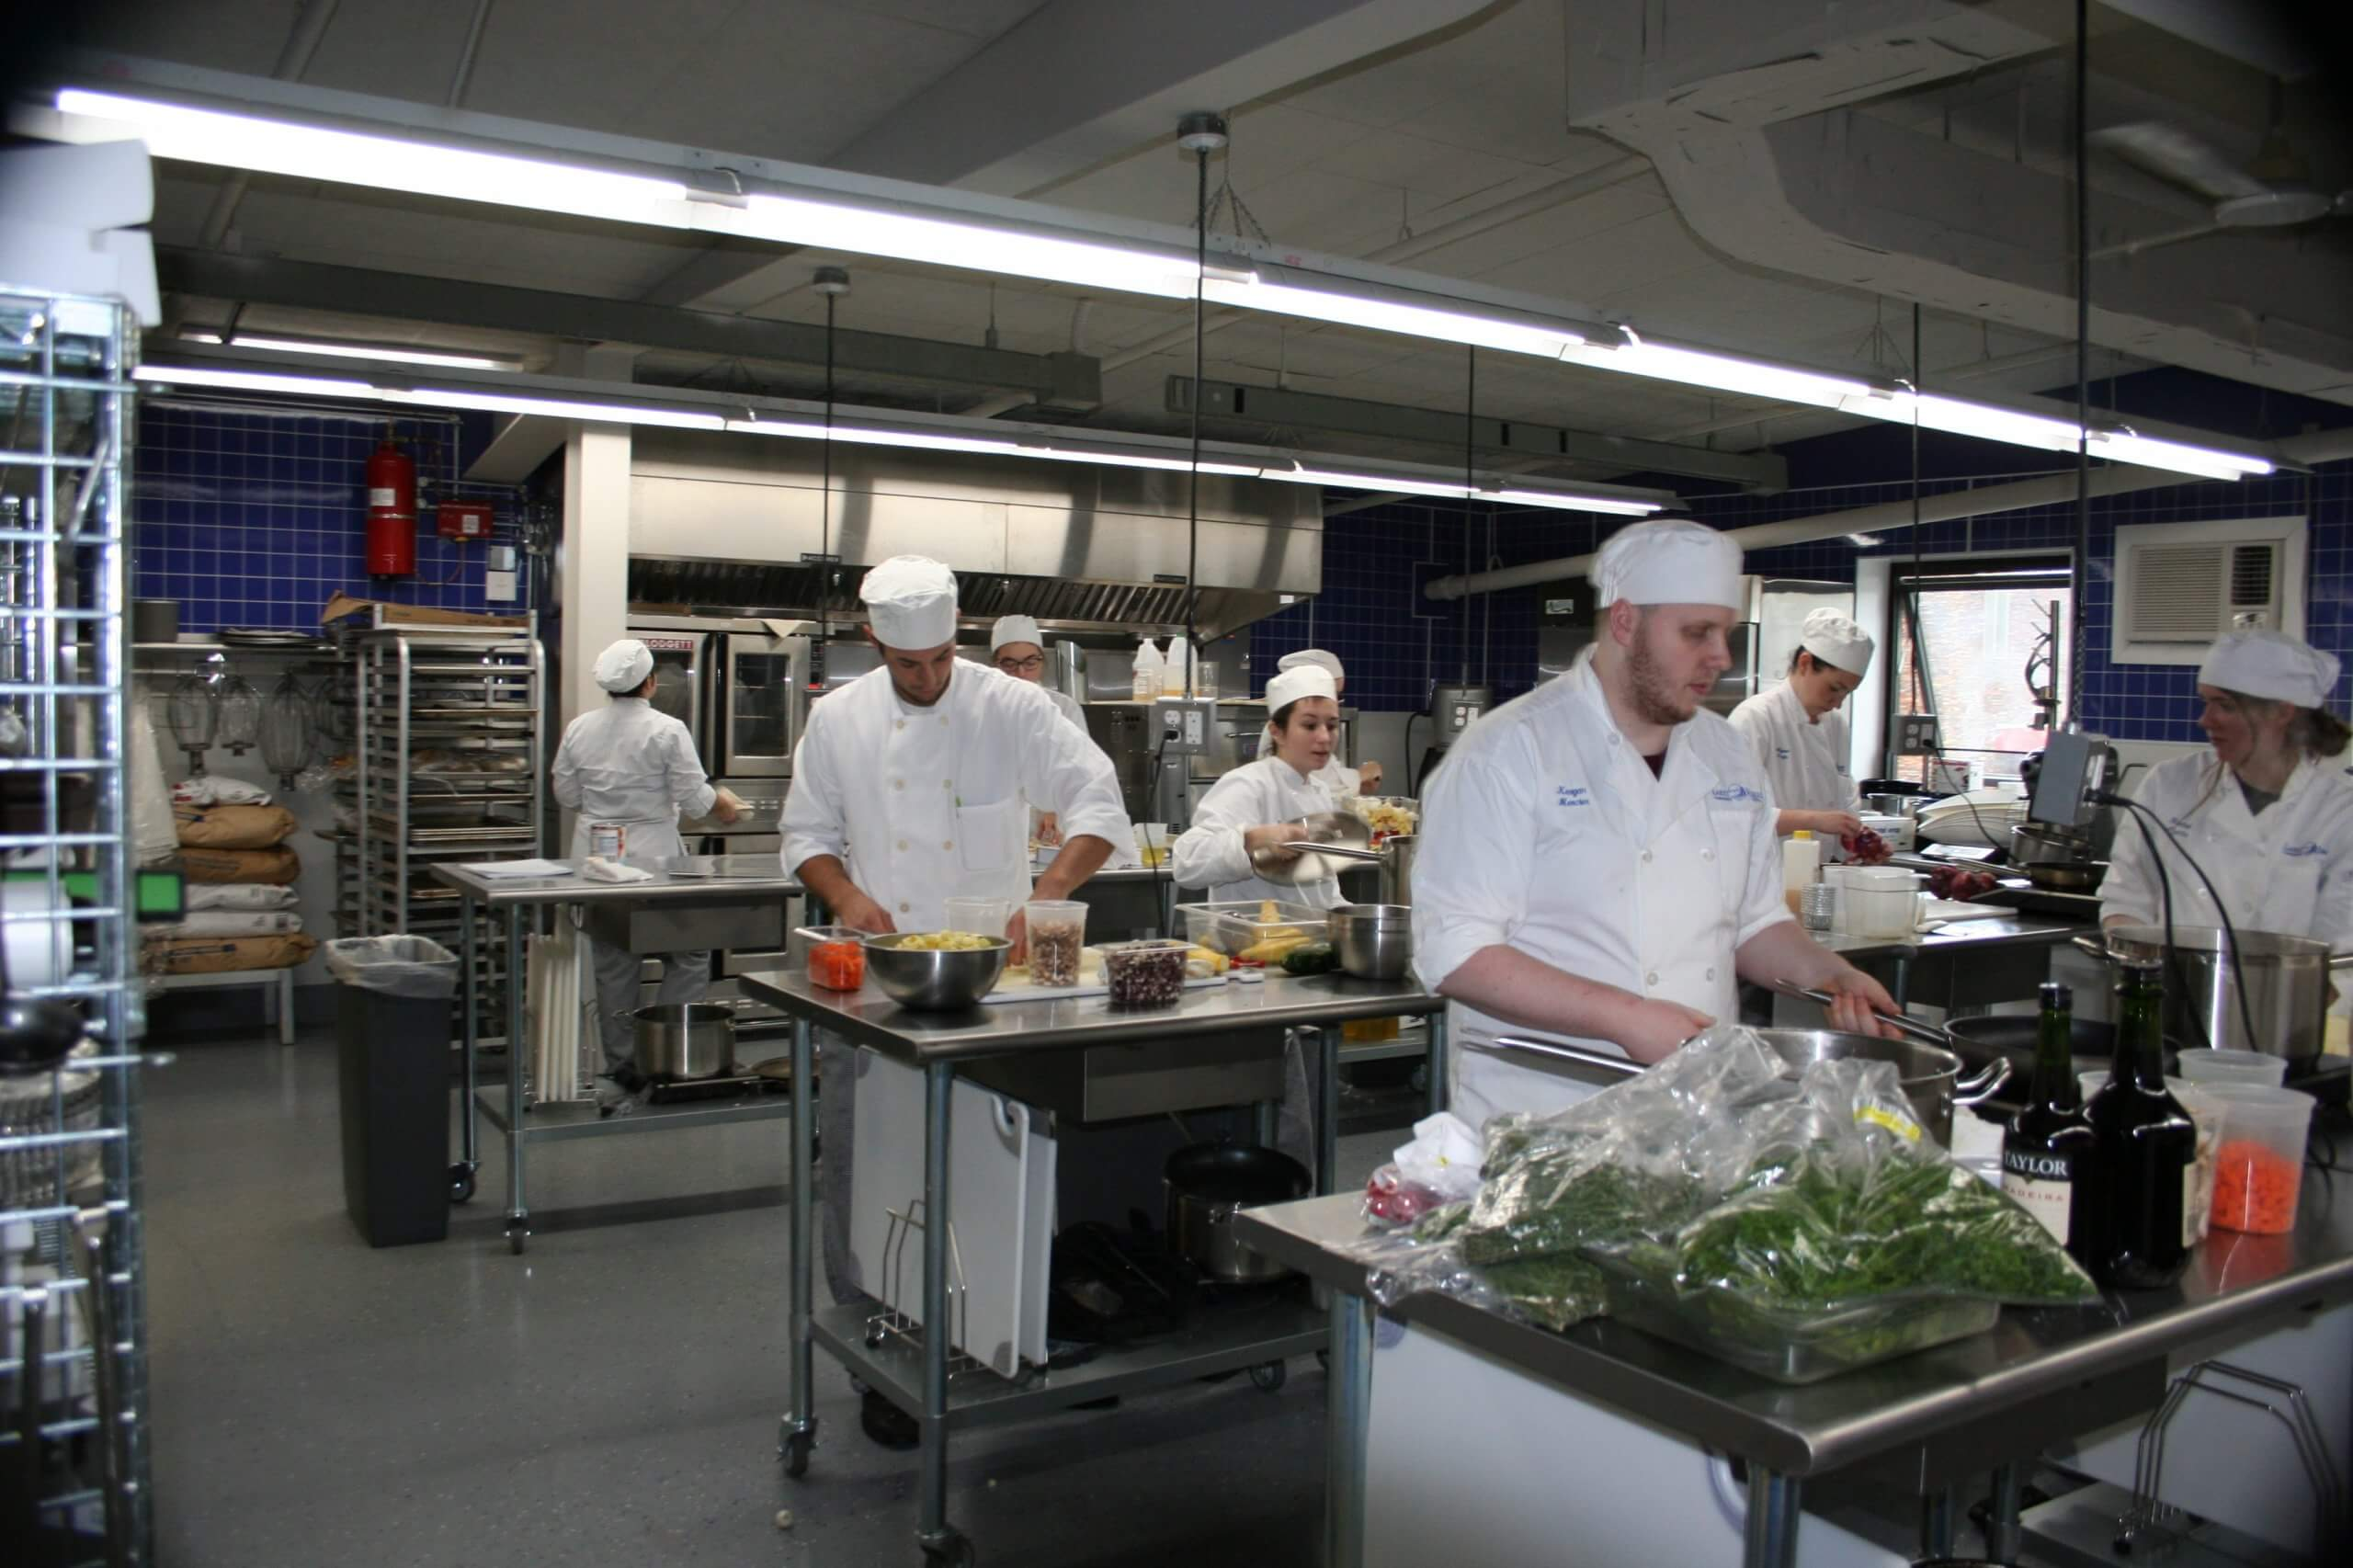 Hotel and Restaurant Operations